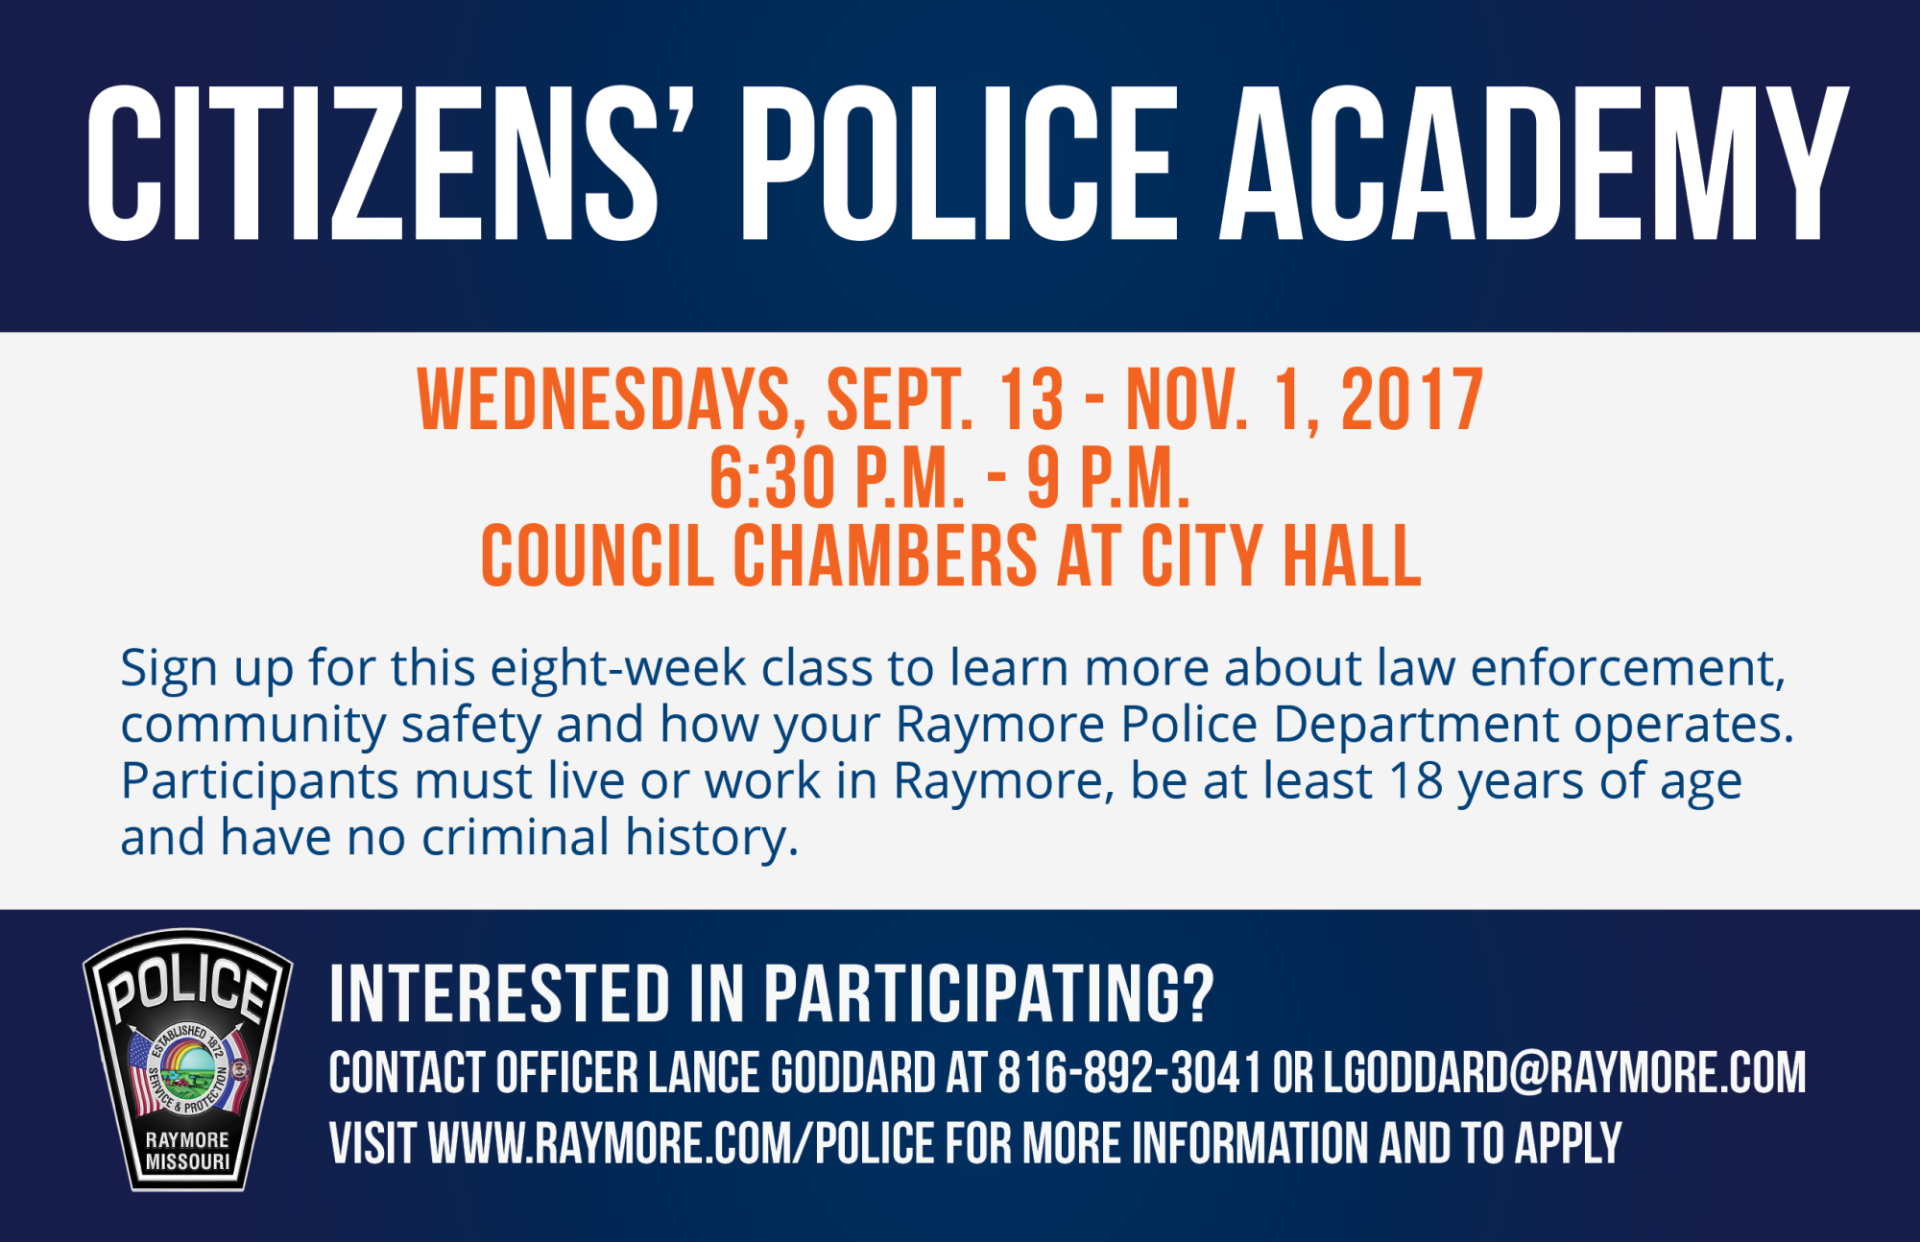 Citizens' Police Academy 2017